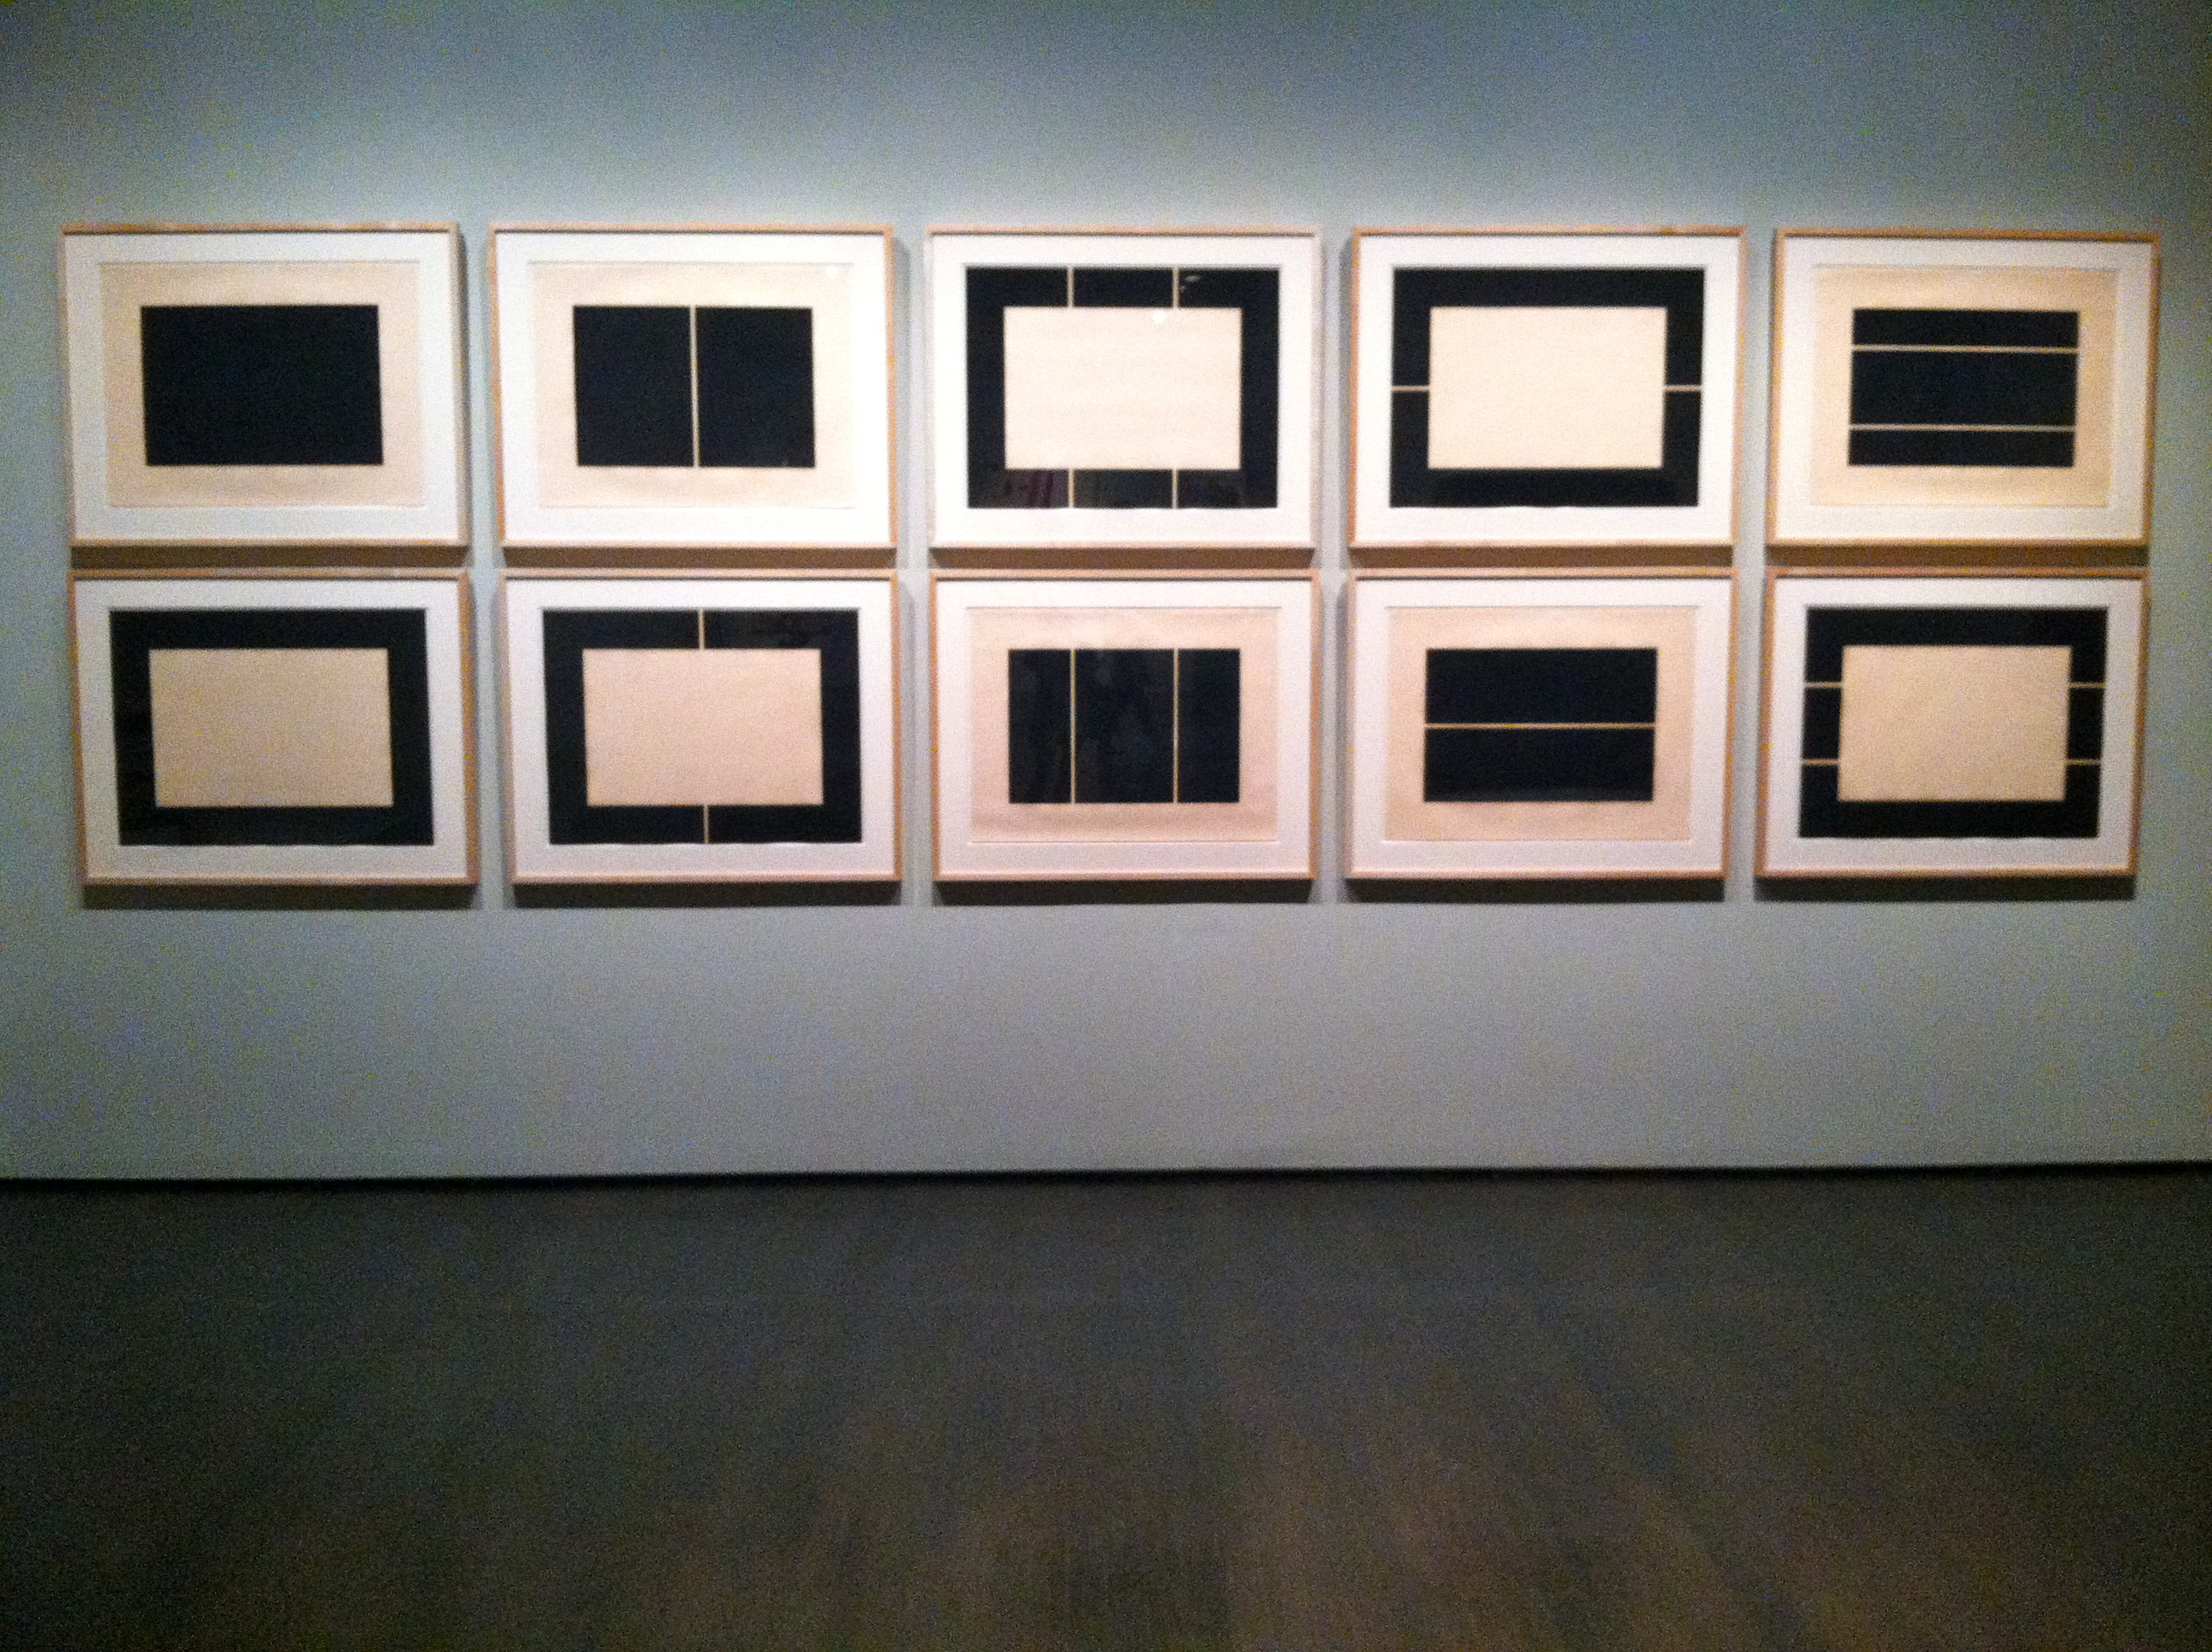 187 los angeles � donald judd at lacma through august 4th